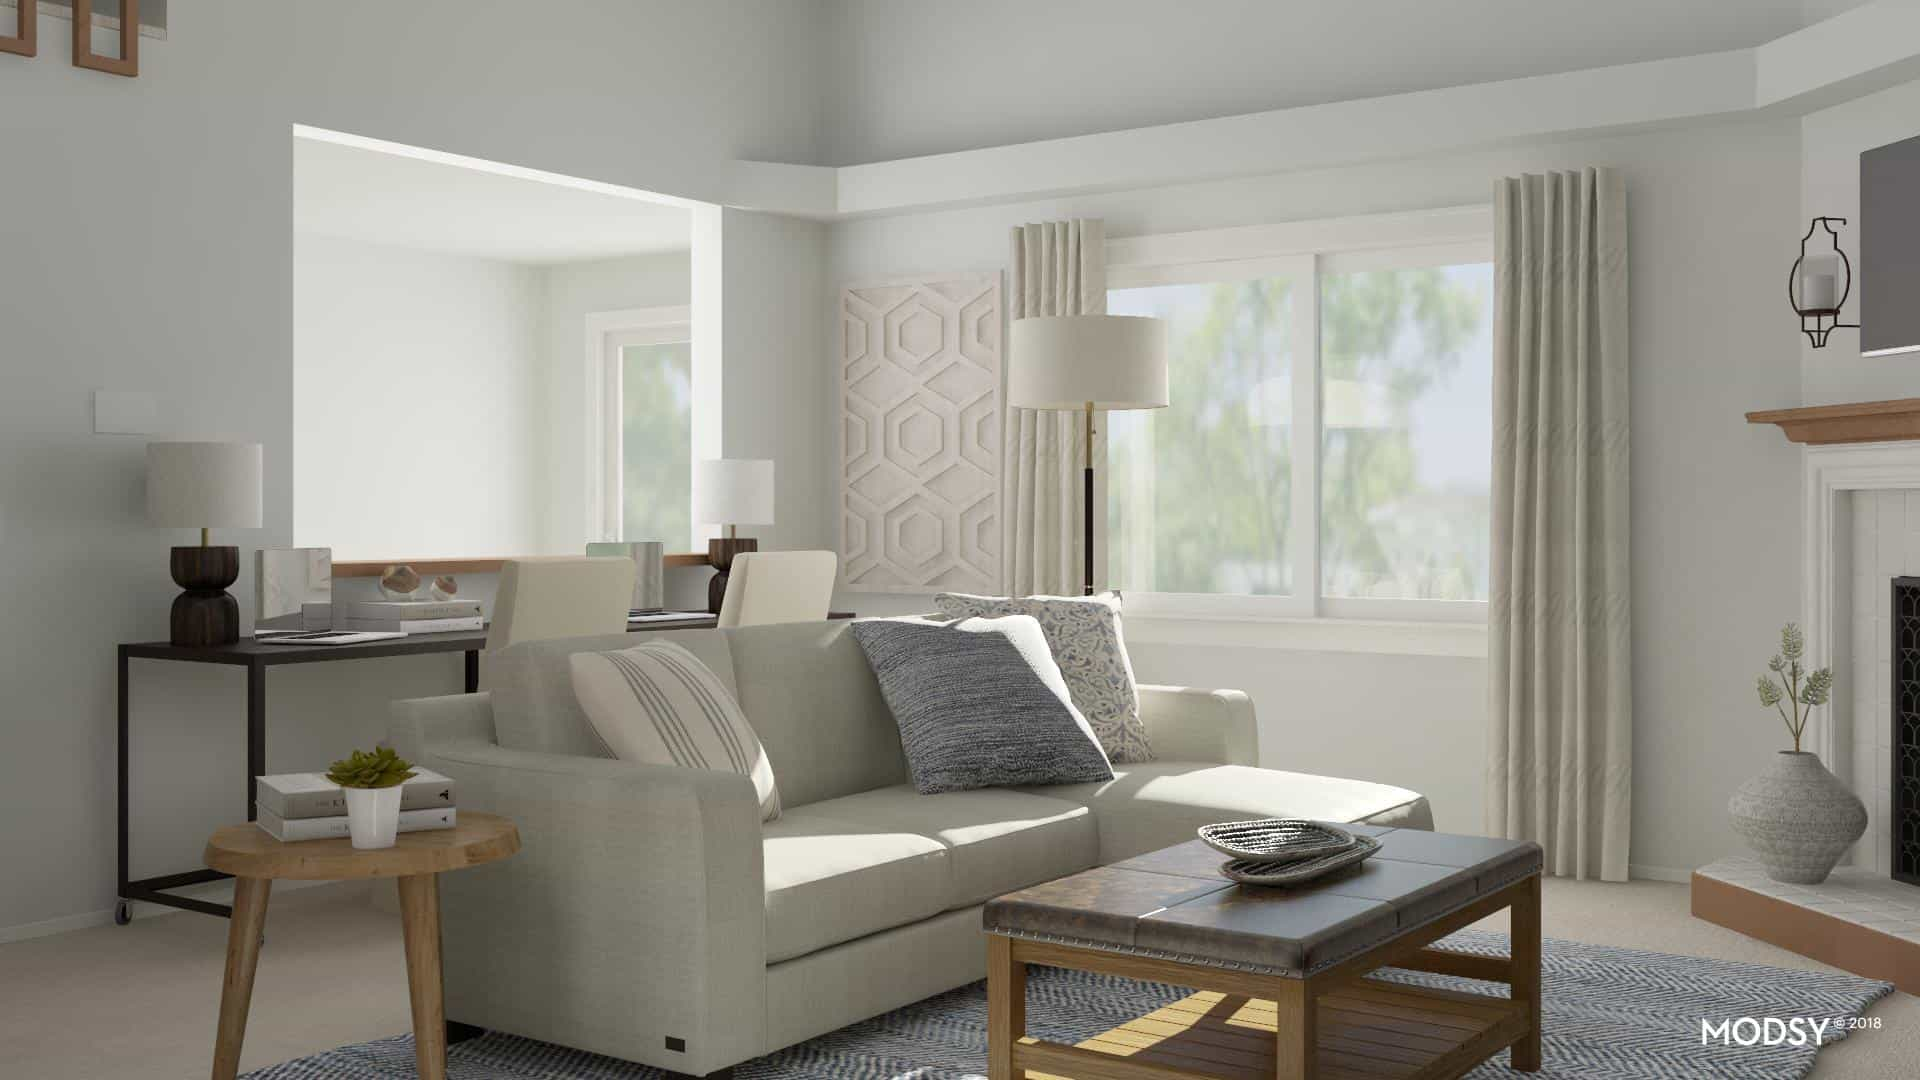 Get the confidence to decorate any room in your home -- no matter how challenging. See how a challenging living room get a whole new design perspective!